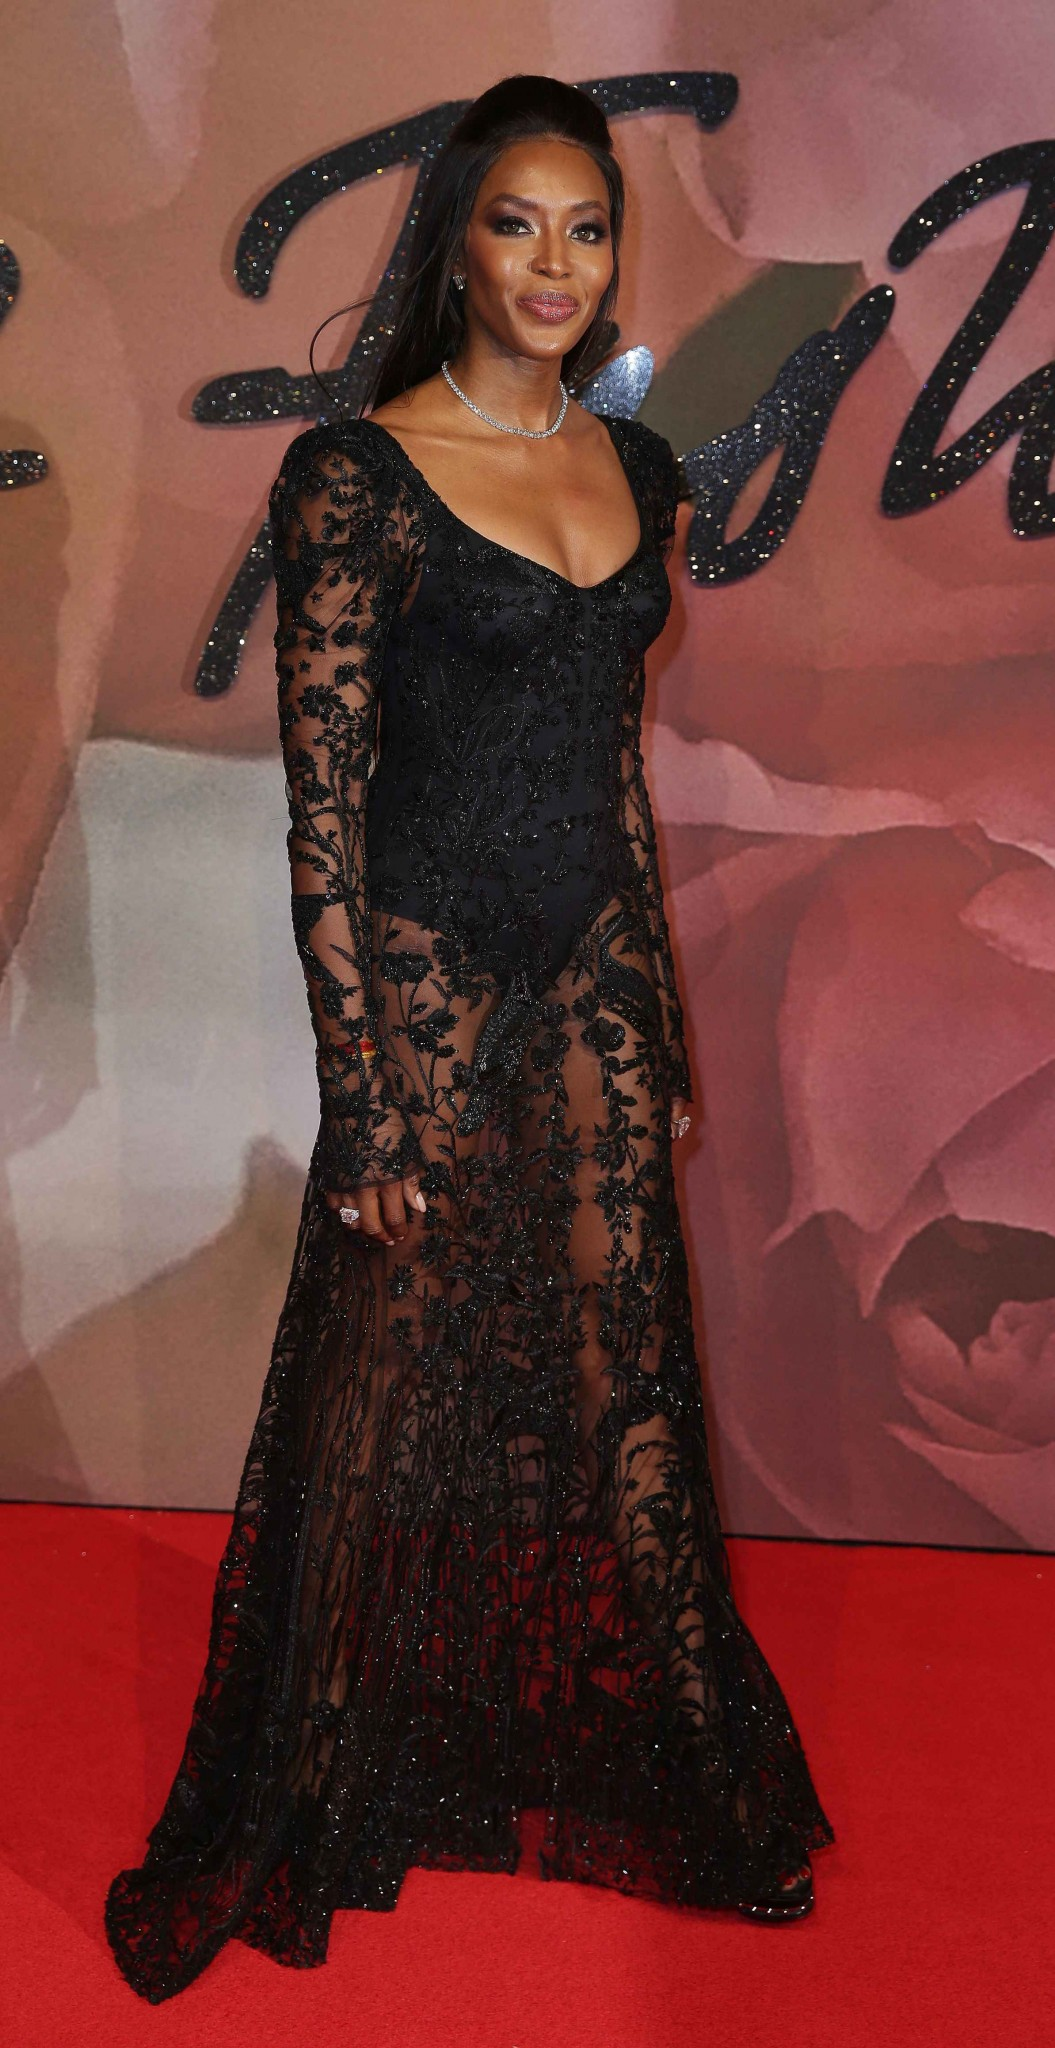 Fashion model Naomi Campbell in a lace gown